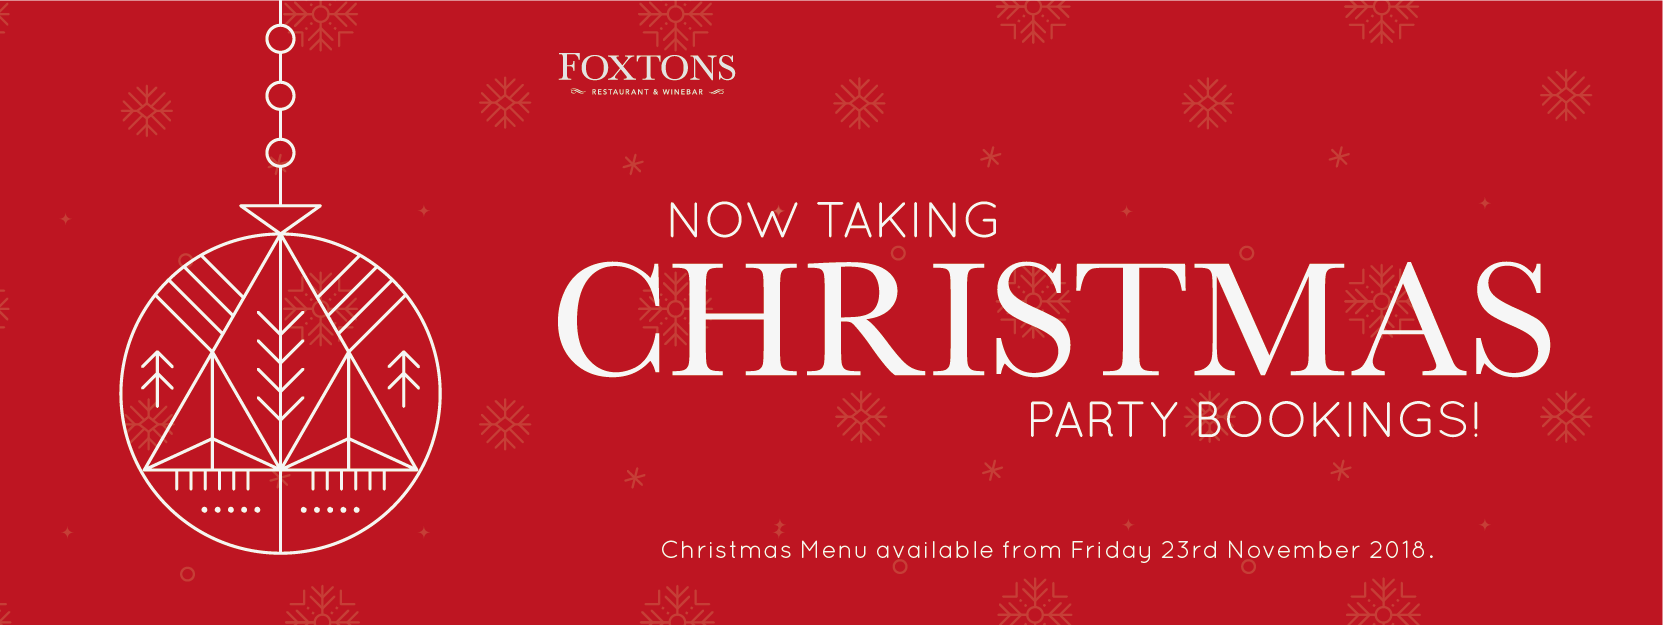 Now taking Christmas Party Bookings 2018 - Foxtons Winebar ...